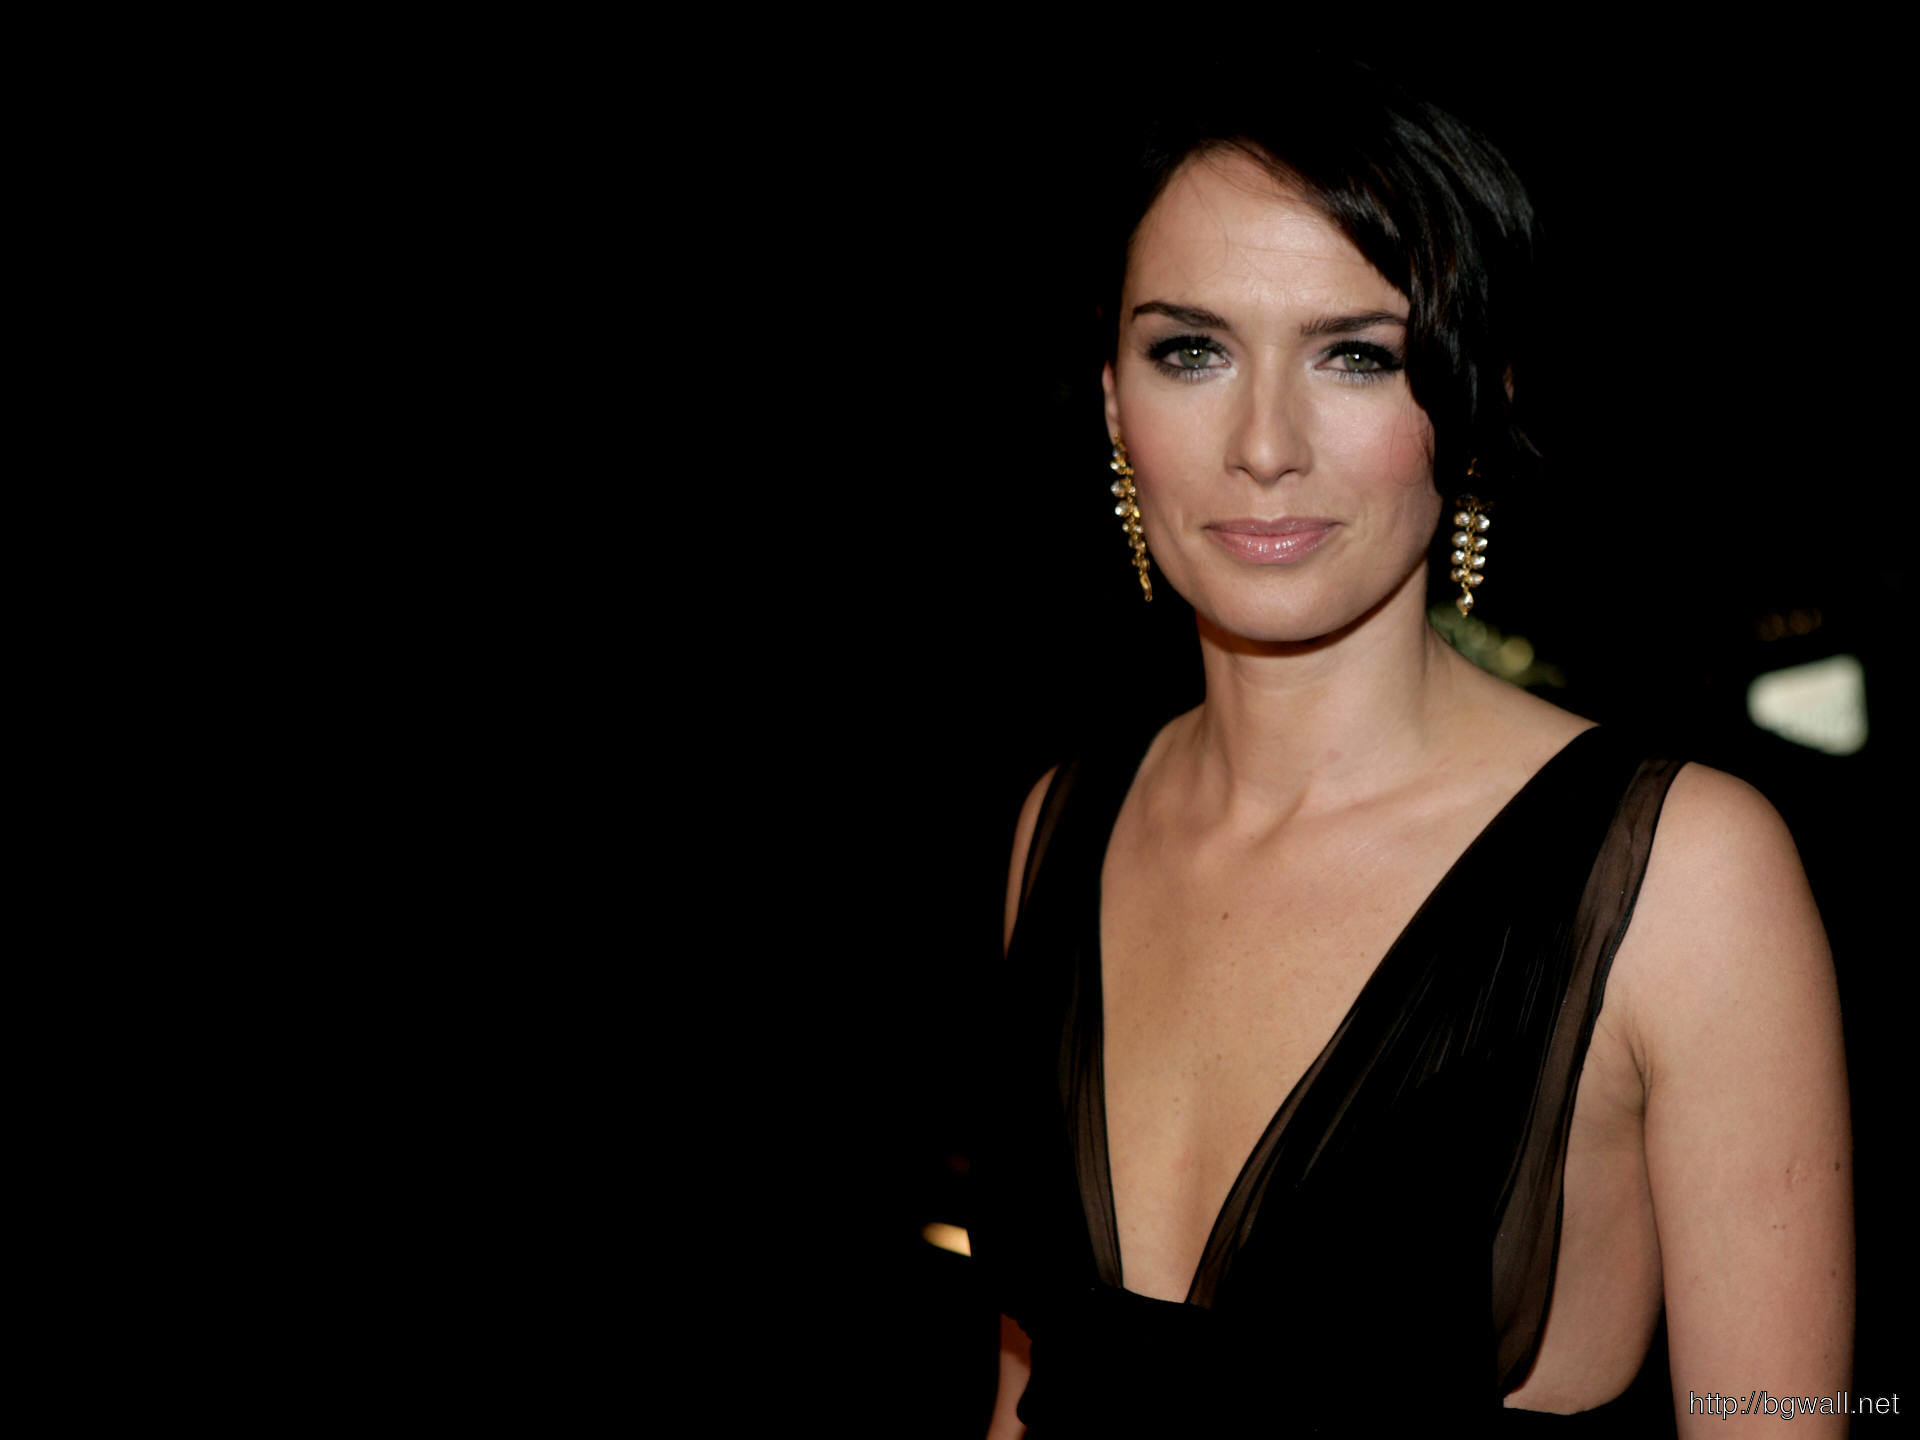 Lena Headey Pictures 300x225 Lena Headey Pictures Full Size